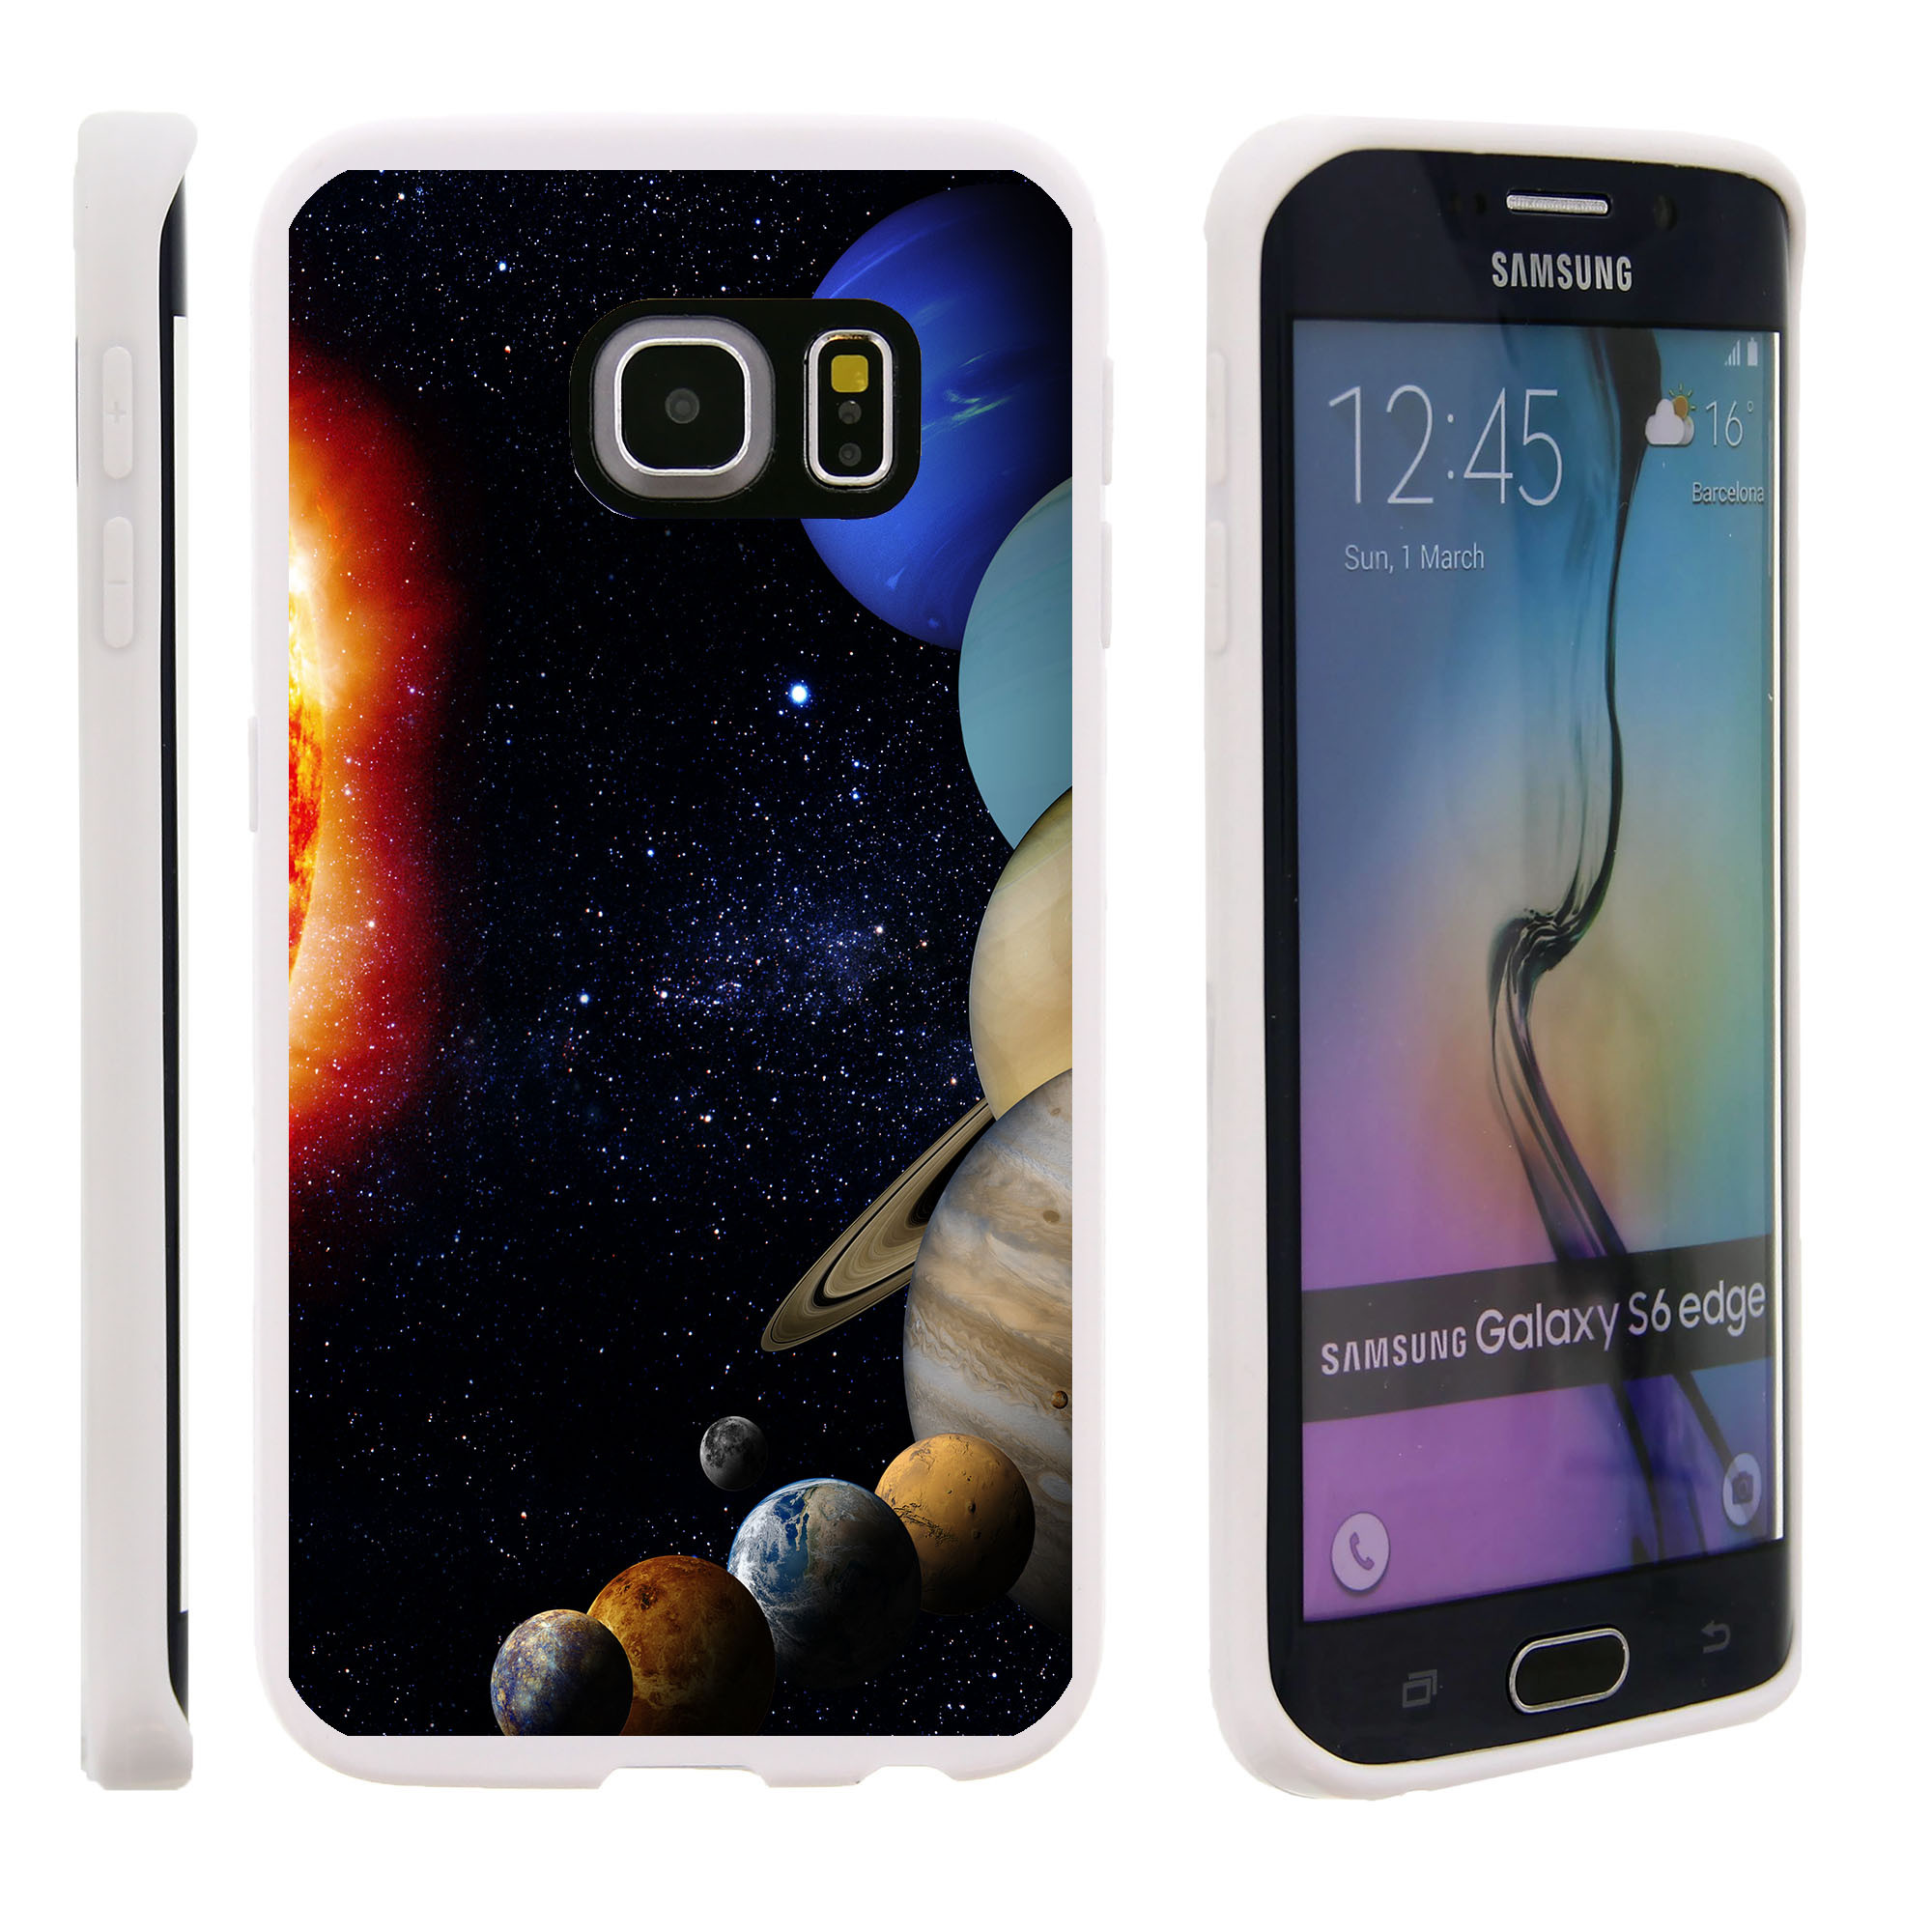 Samsung Galaxy S6 Edge G925, Flexible Case [FLEX FORCE] Slim Durable TPU Sleek Bumper with Unique Designs - Planets Around the Sun